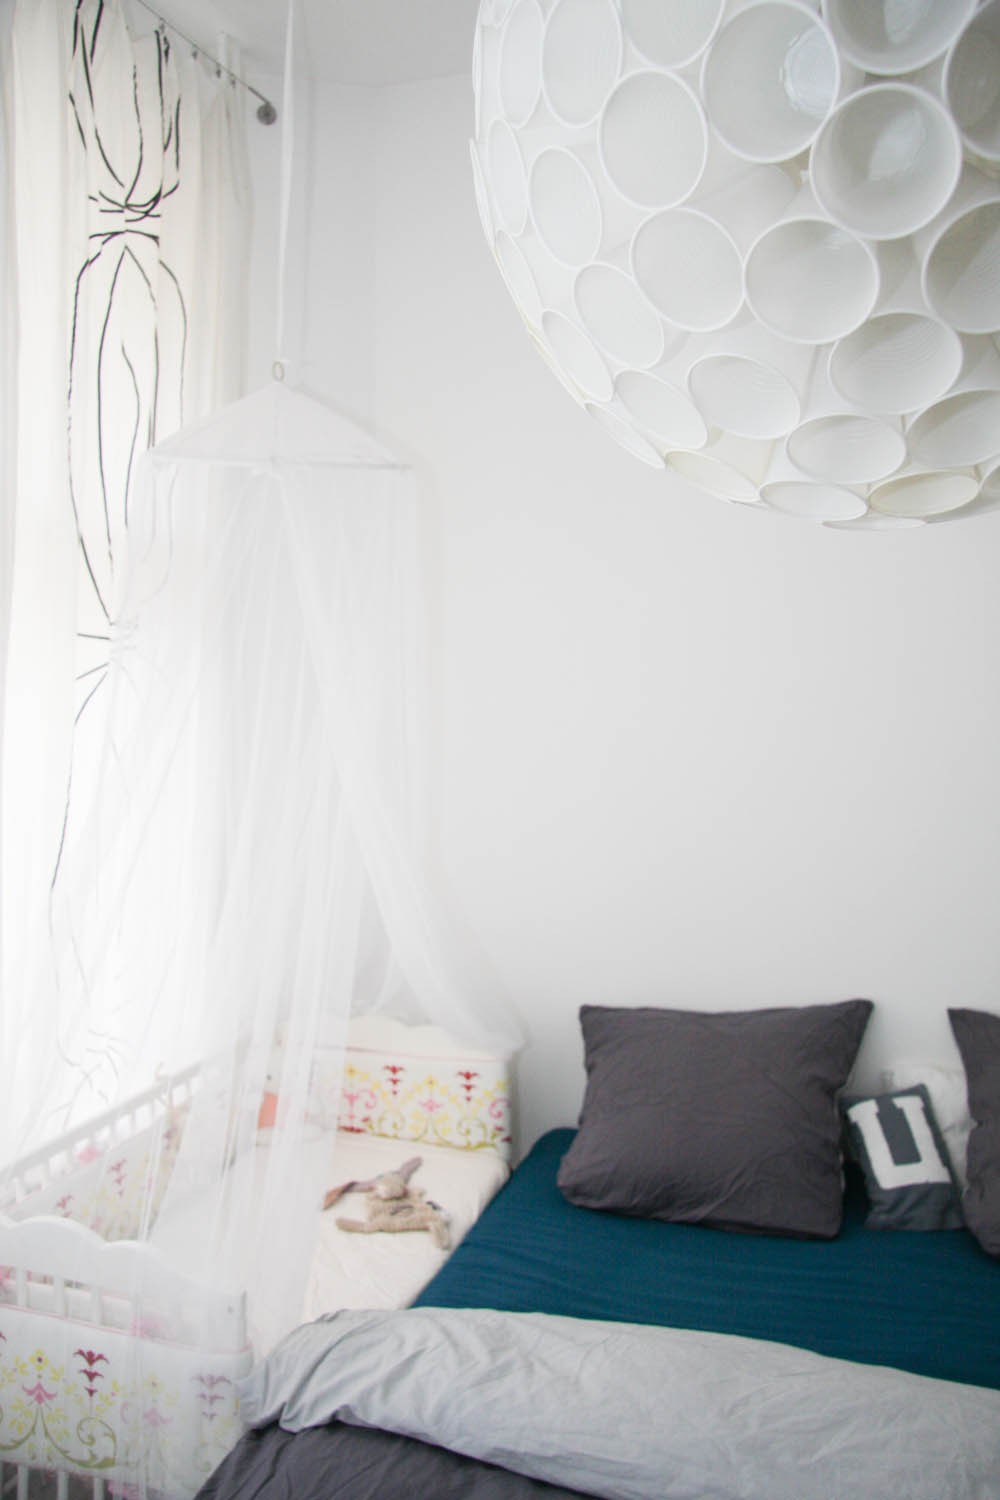 interior-family-co-sleeping-by kleinstyle.com